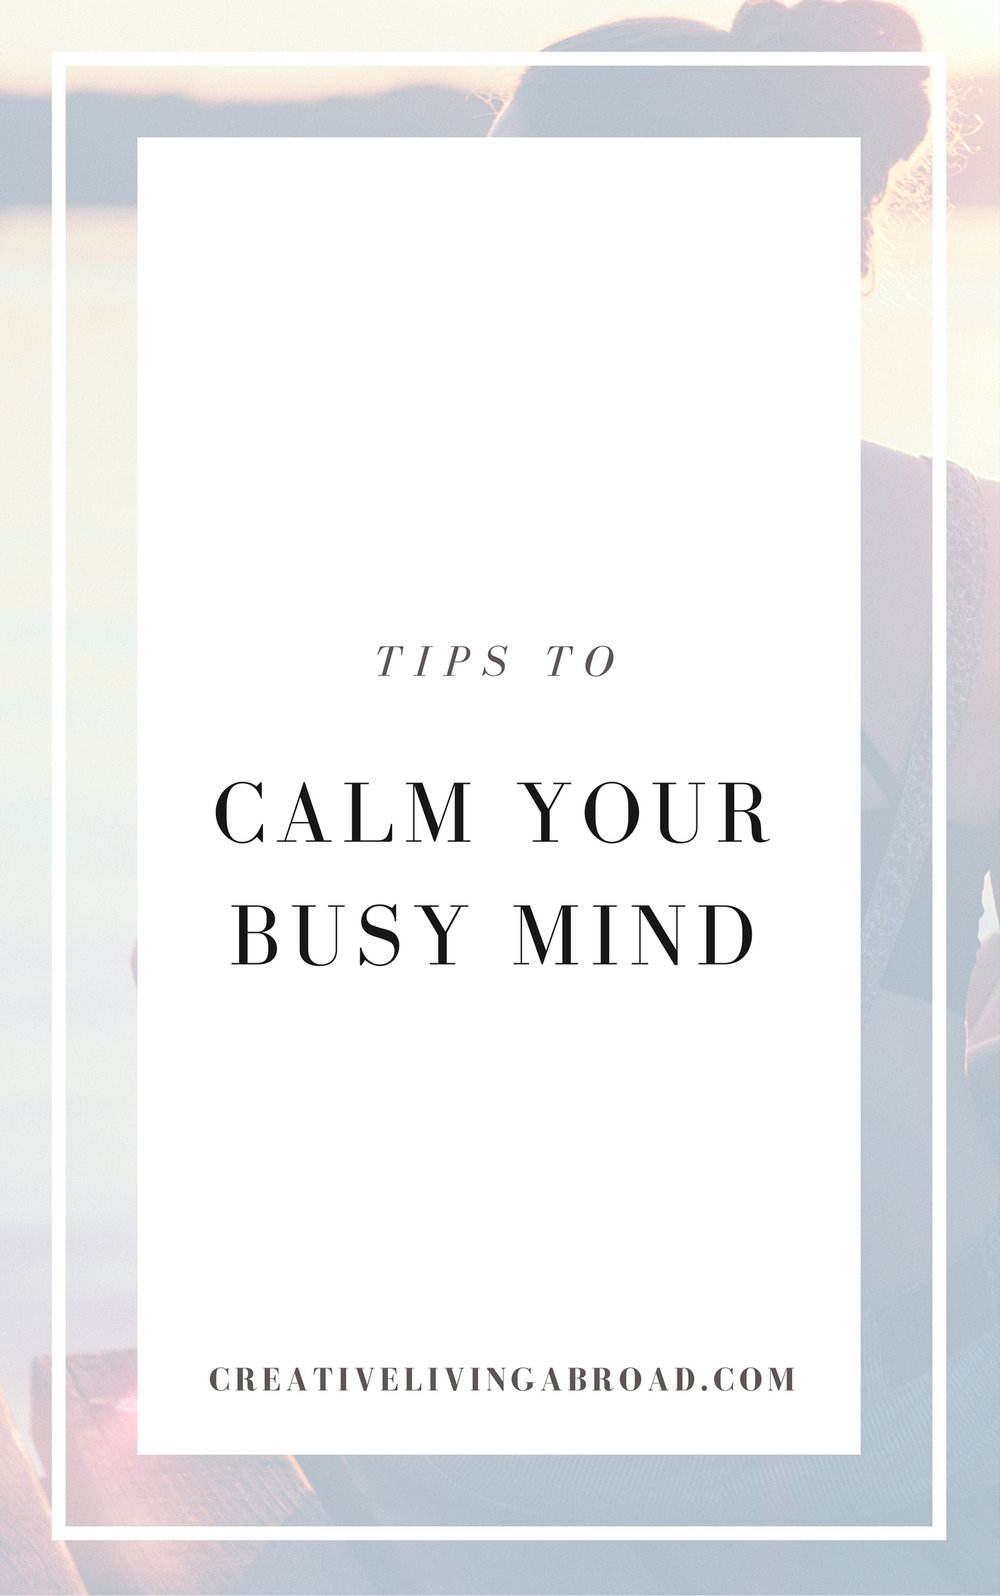 tips to calm your busy mind